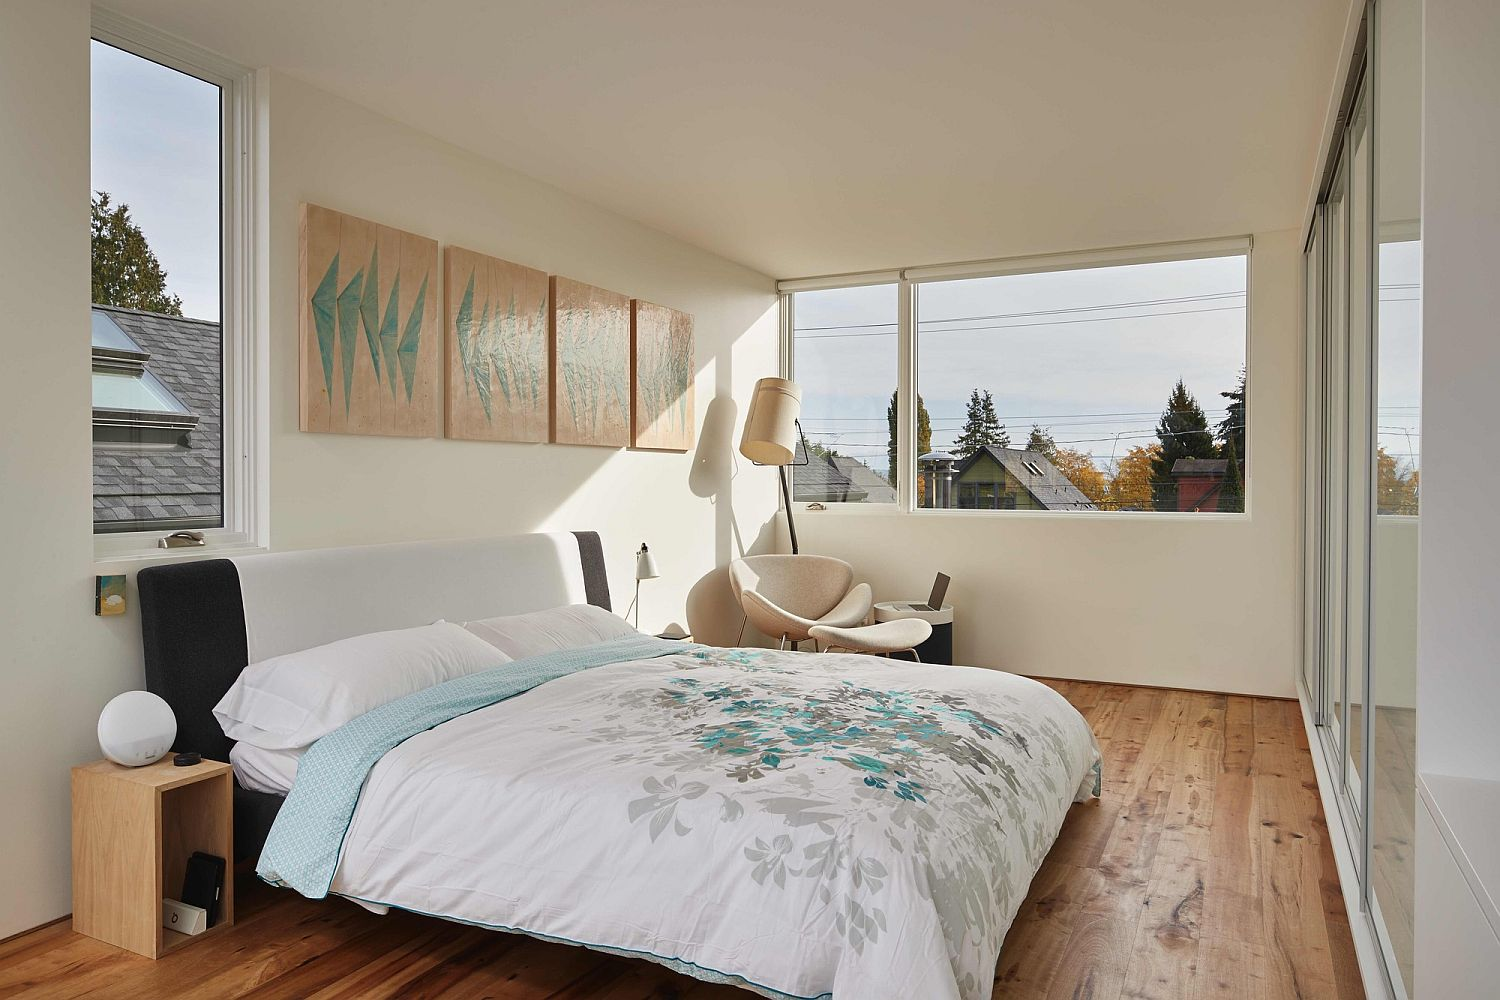 Small bedroom in white with wooden flooring and a series of windows that bring in natural light